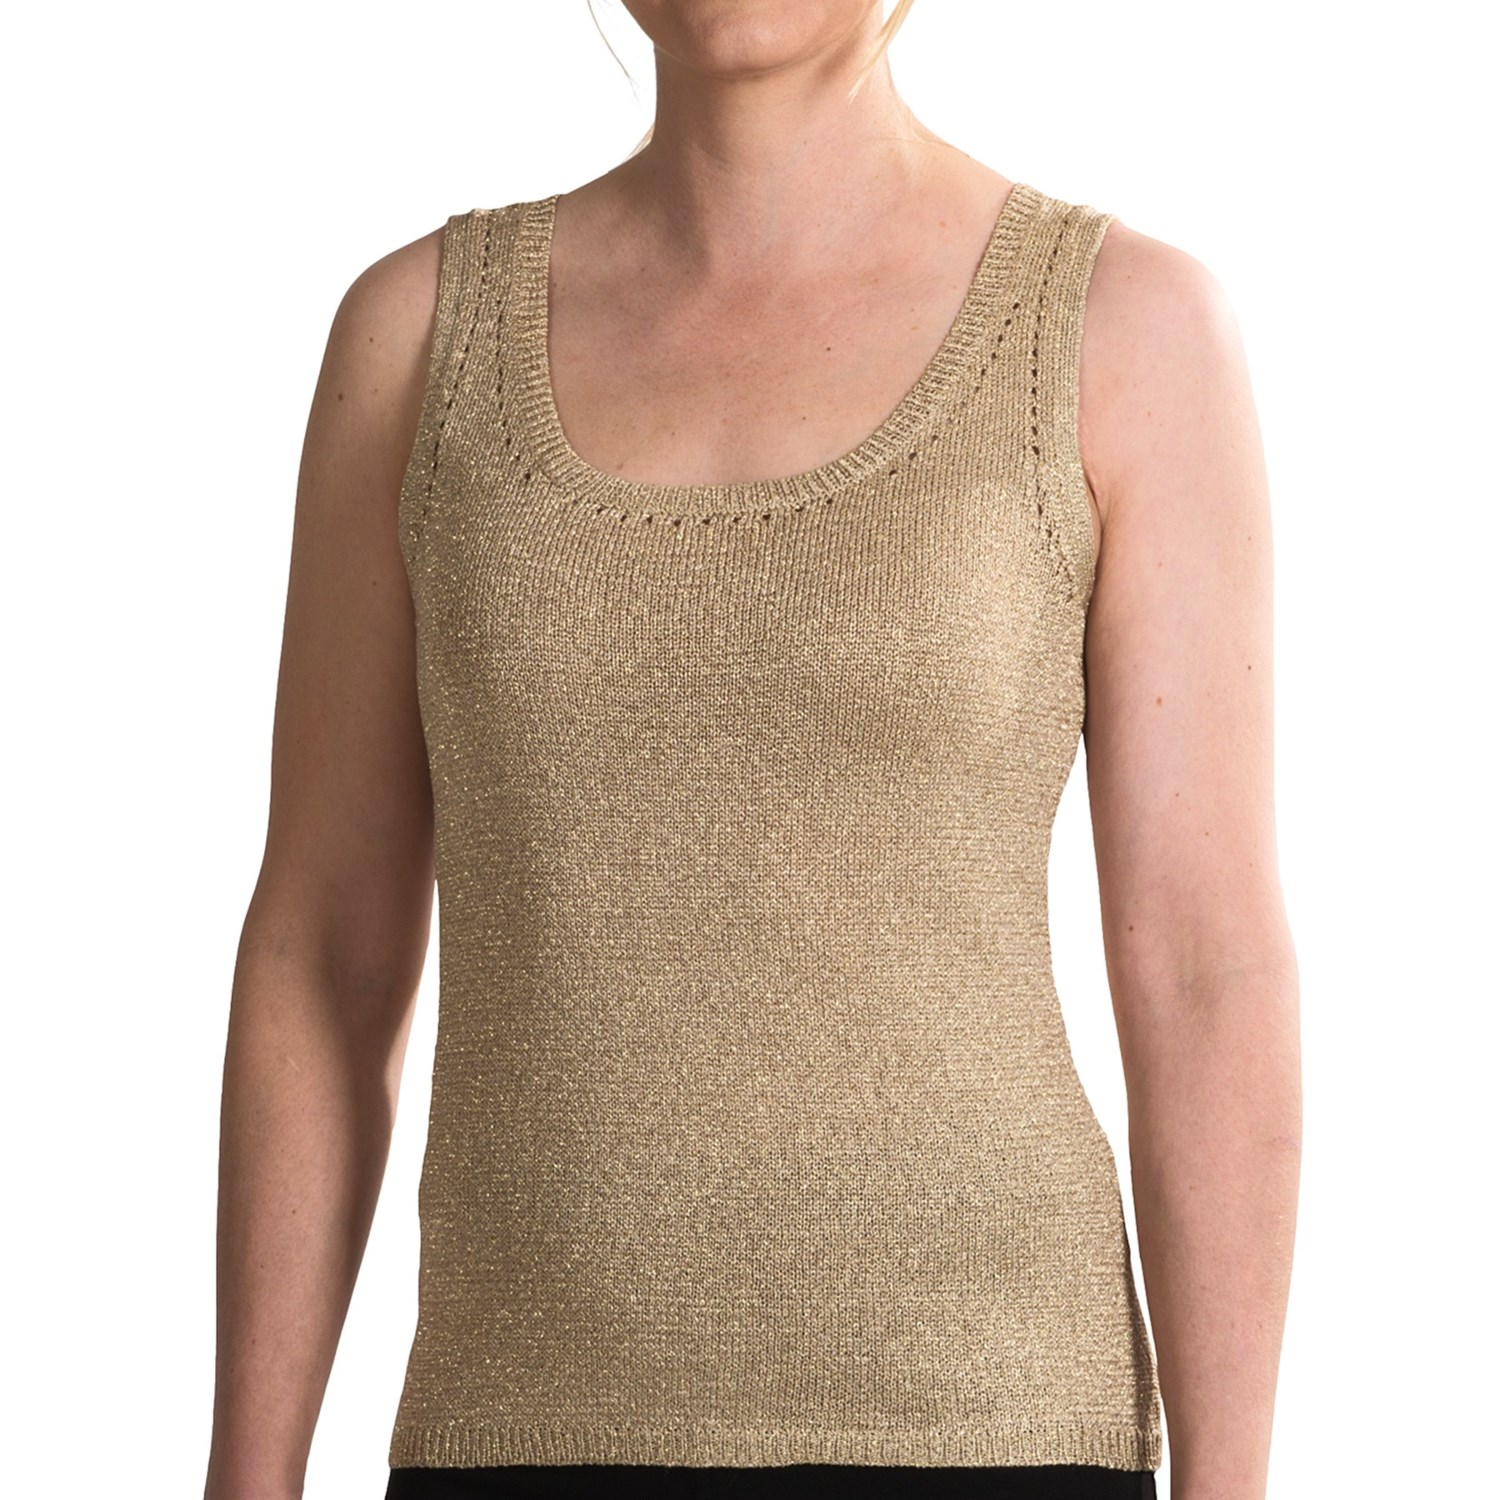 Affordable women's tank tops online store for every occasion. Shop now for the latest styles of ladies camisoles tops% off 1st order.